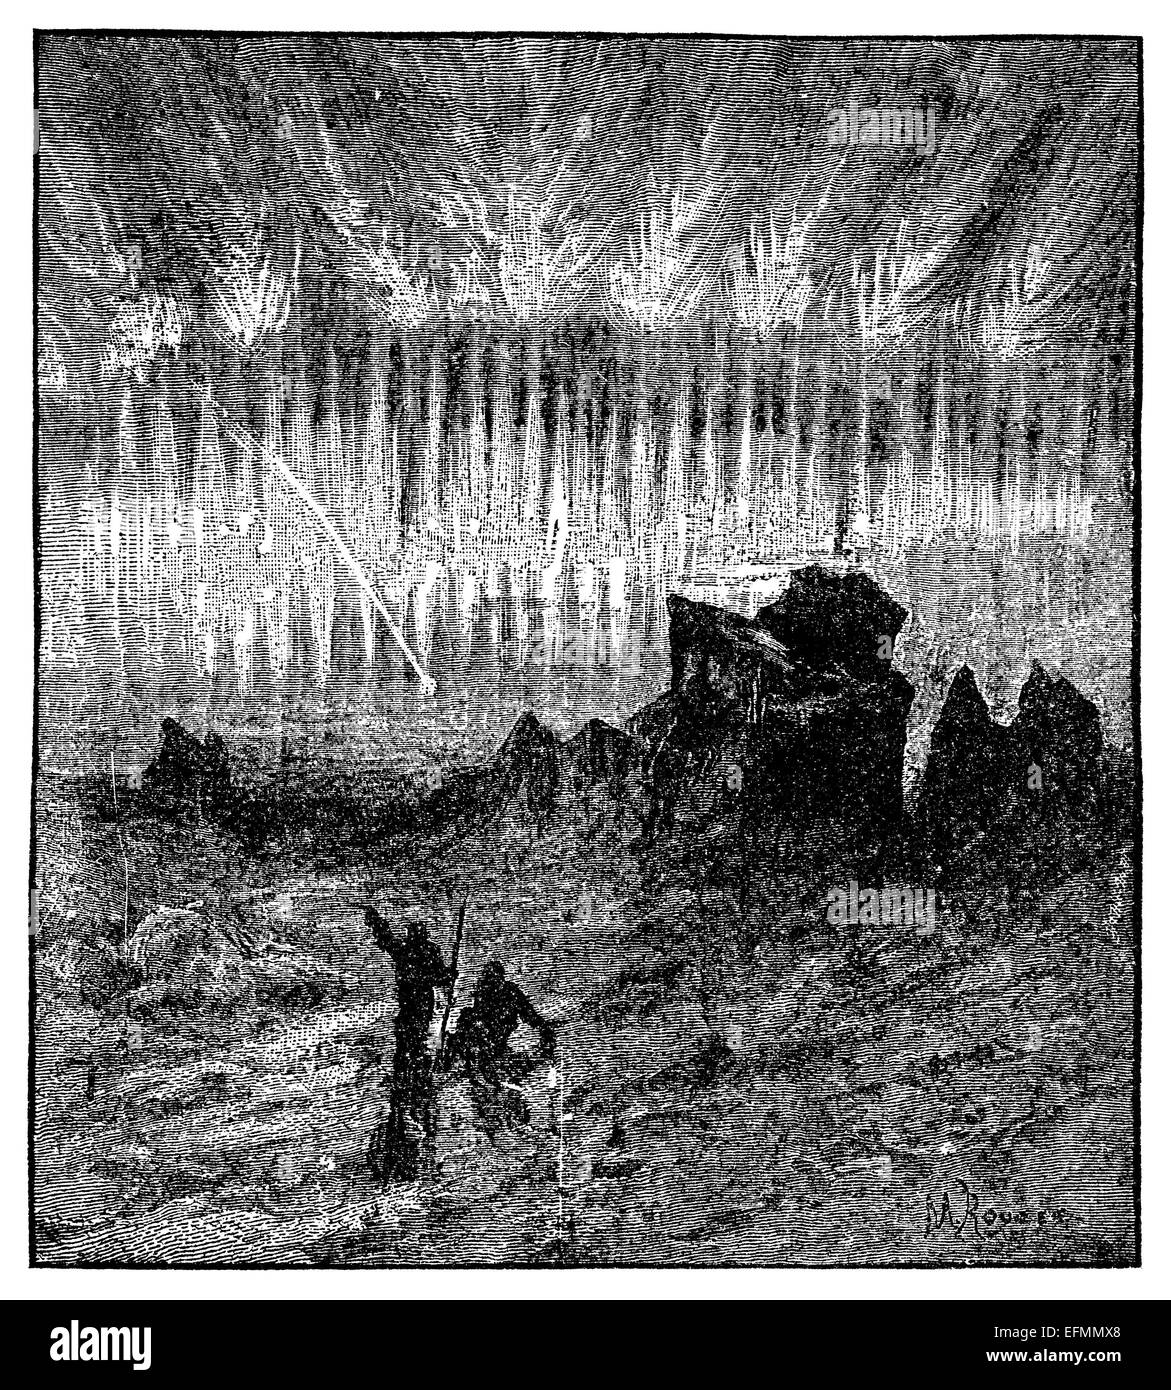 19th century engraving of the Aurora Borealis at night - Stock Image